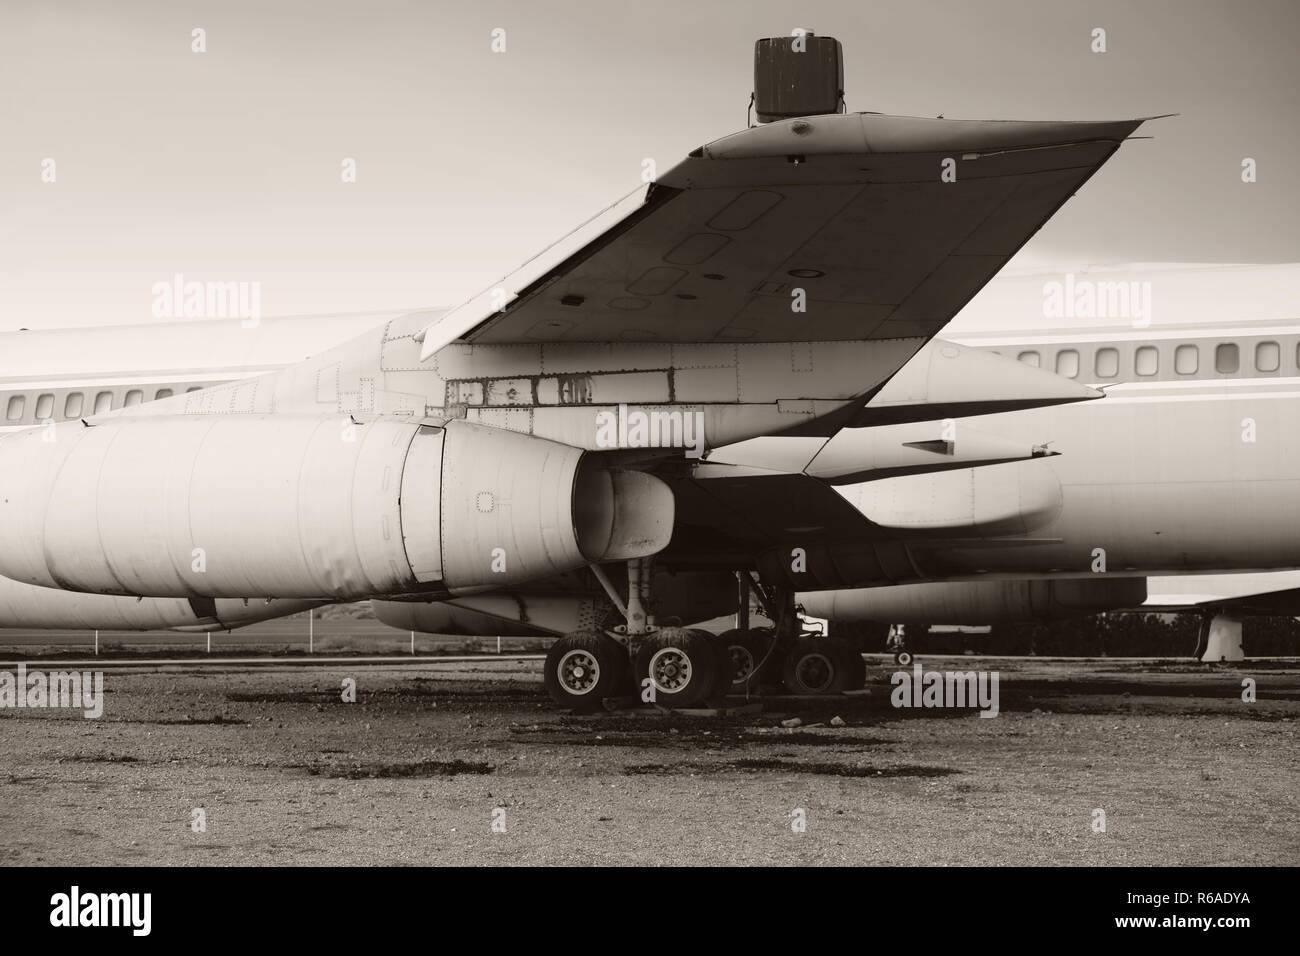 Old Airplane Side View - Stock Image